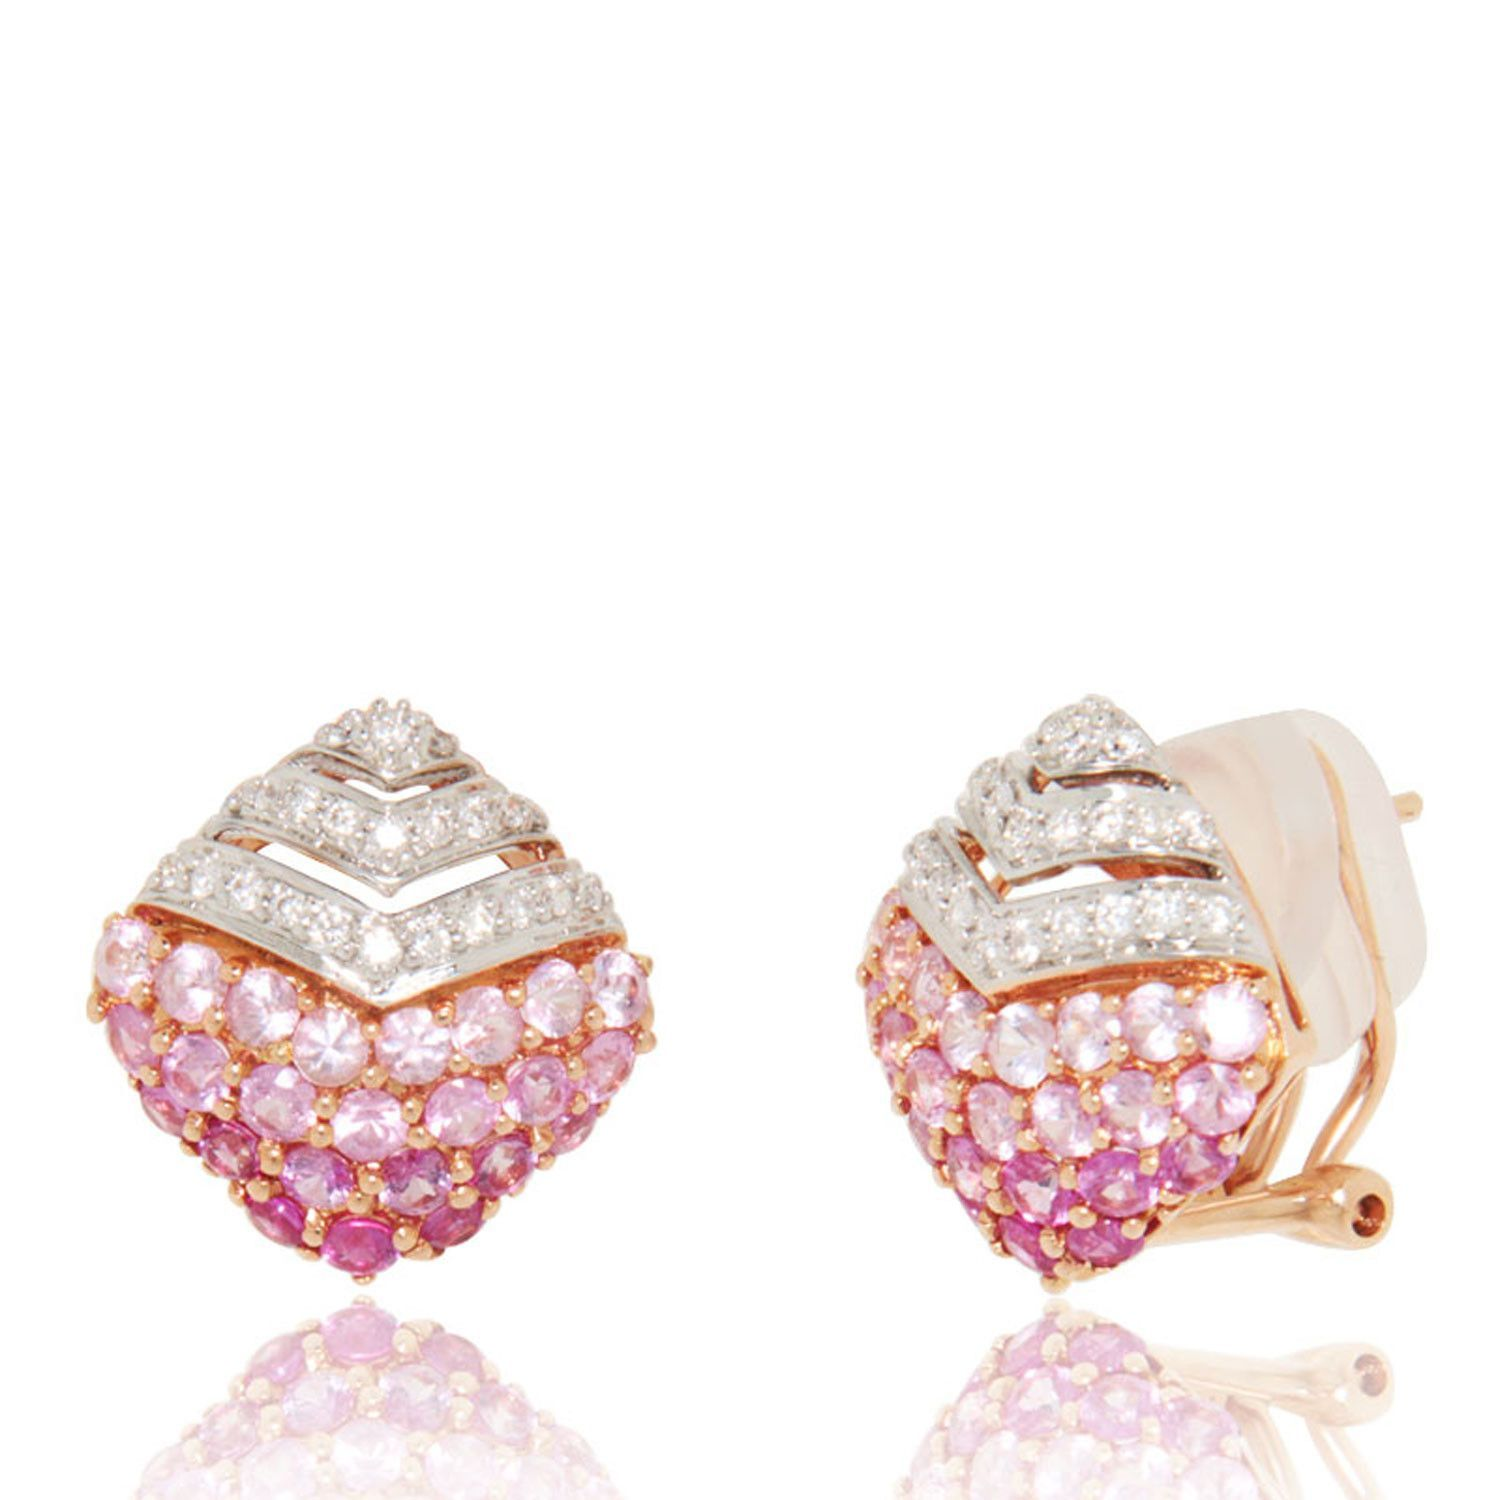 8a53f1ed6a7 Diamond Shaped Earrings starting with Diamonds (0.30 ct) at the top and  degrading Pink Sapphires (1.81 ct) at the bottom. 18k Rose Gold Earrings